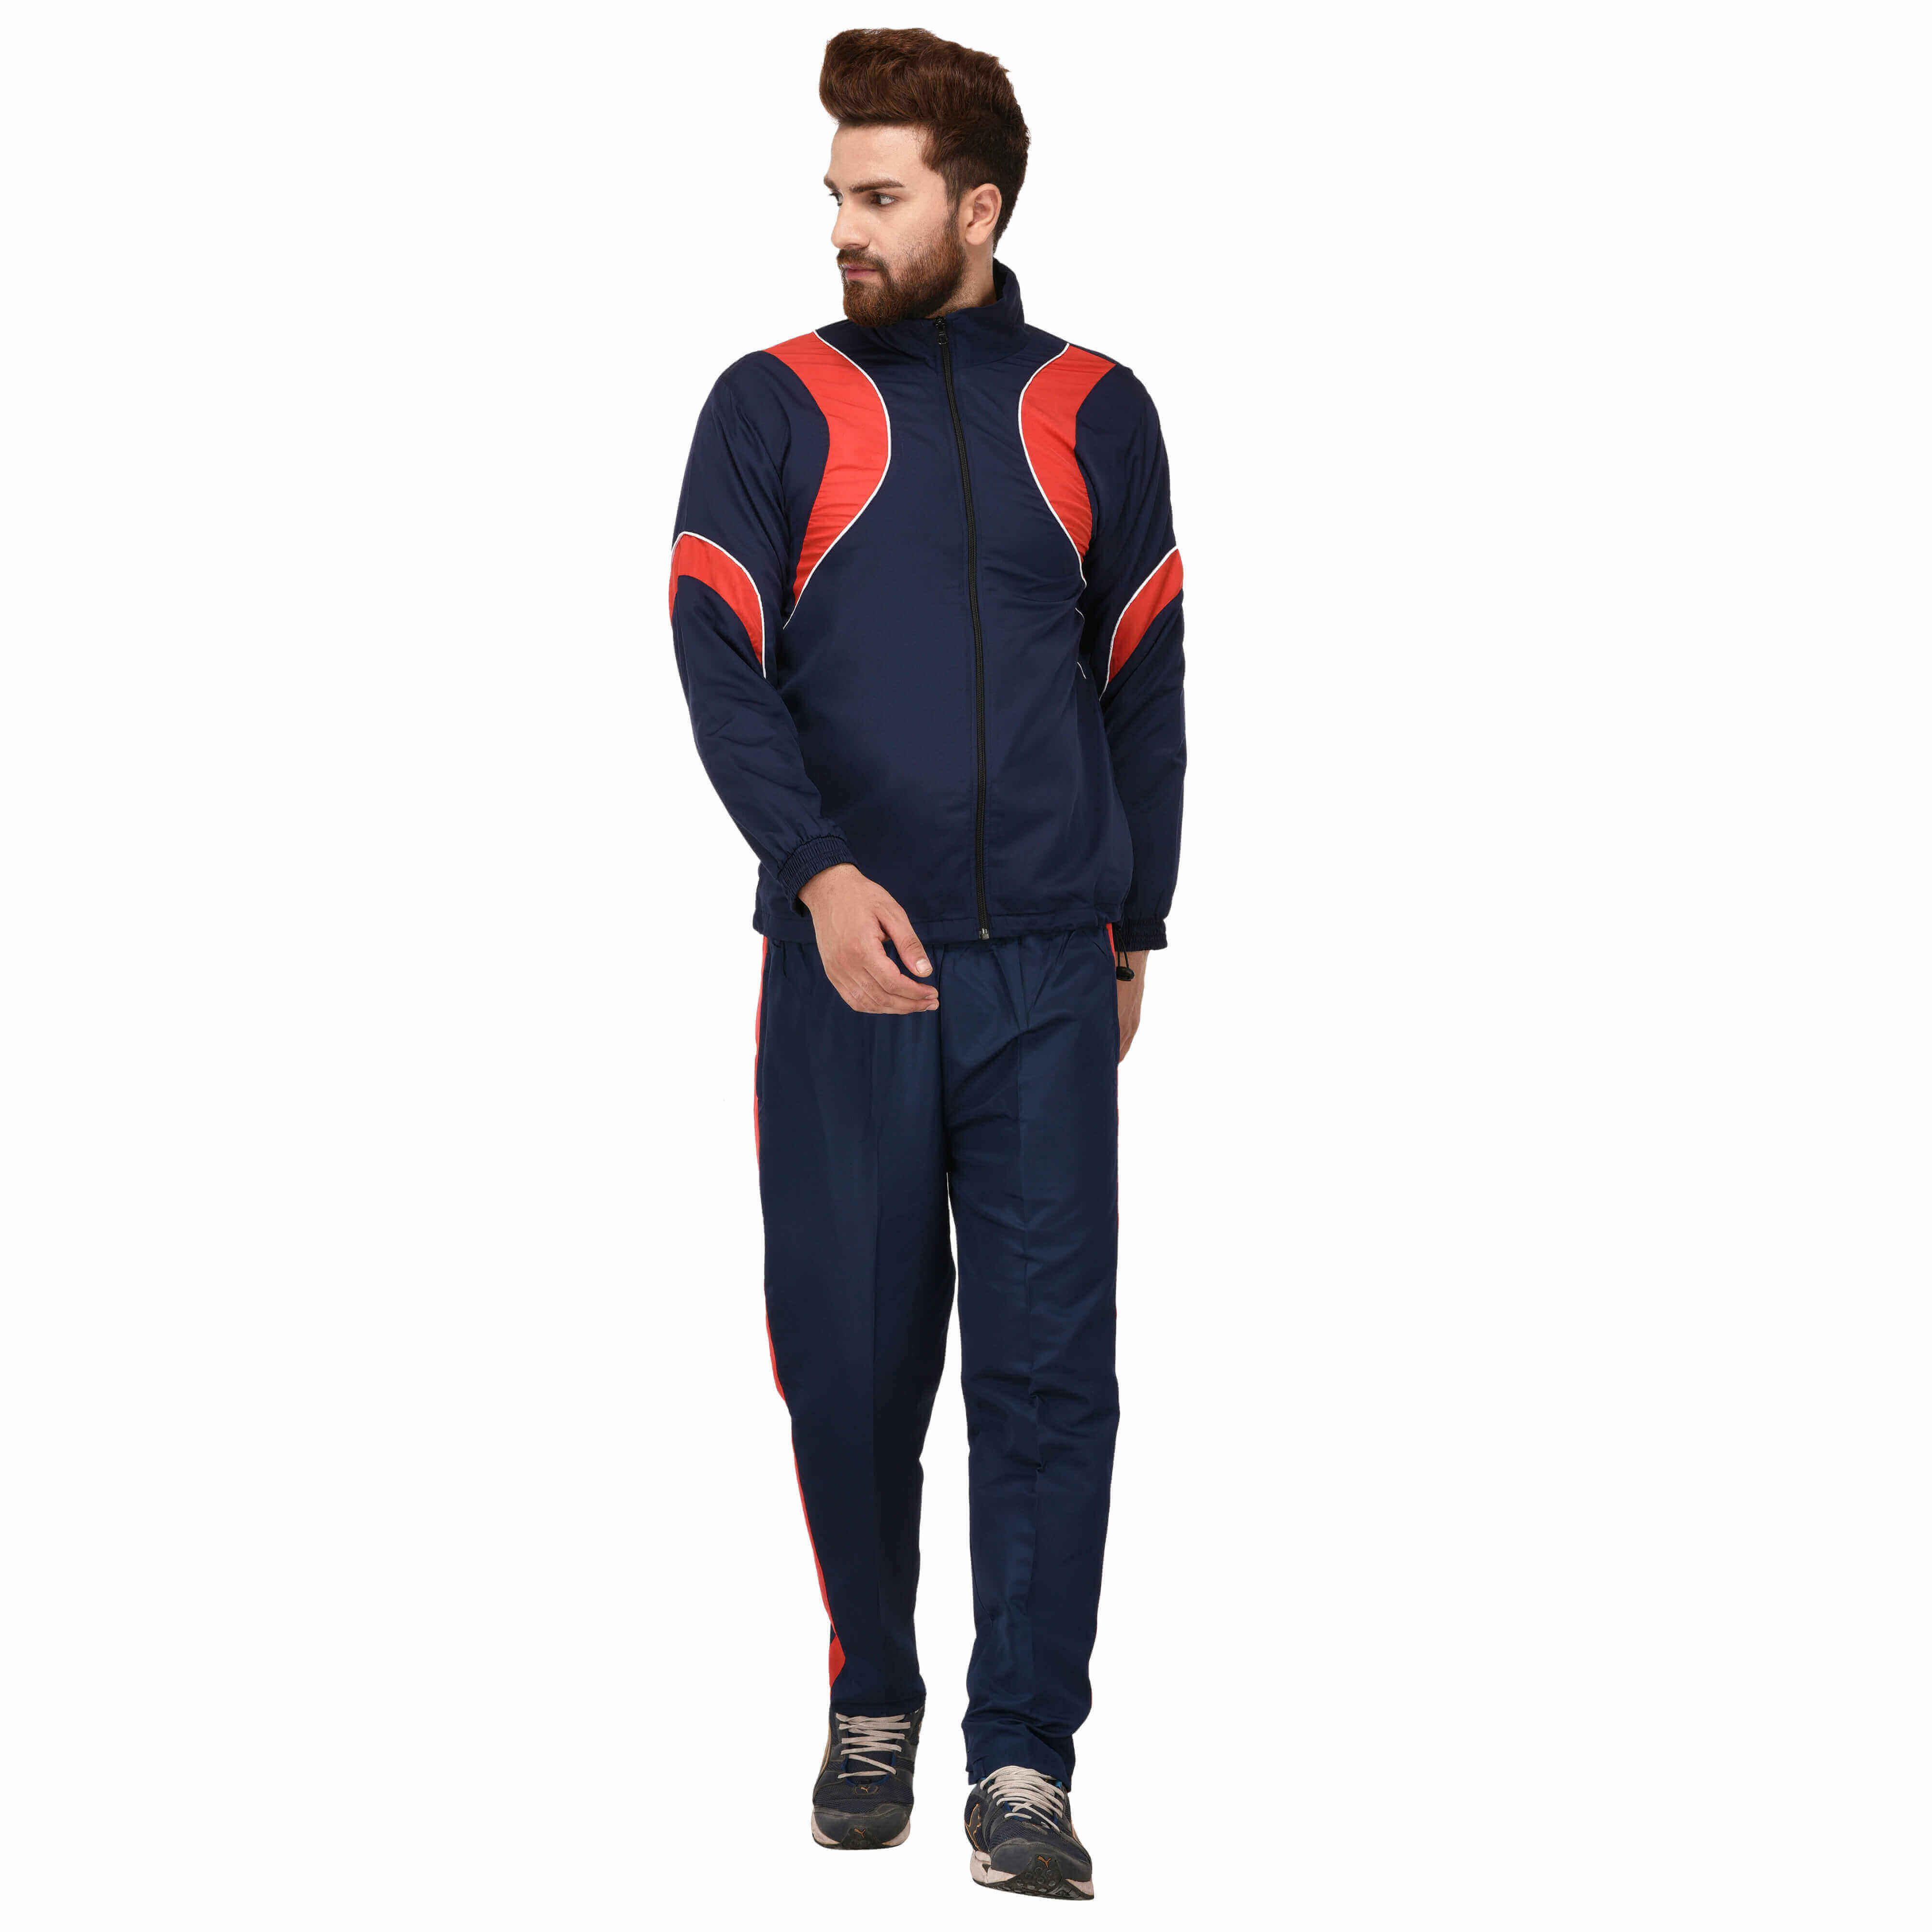 Red Tracksuit Manufacturers in Raipur